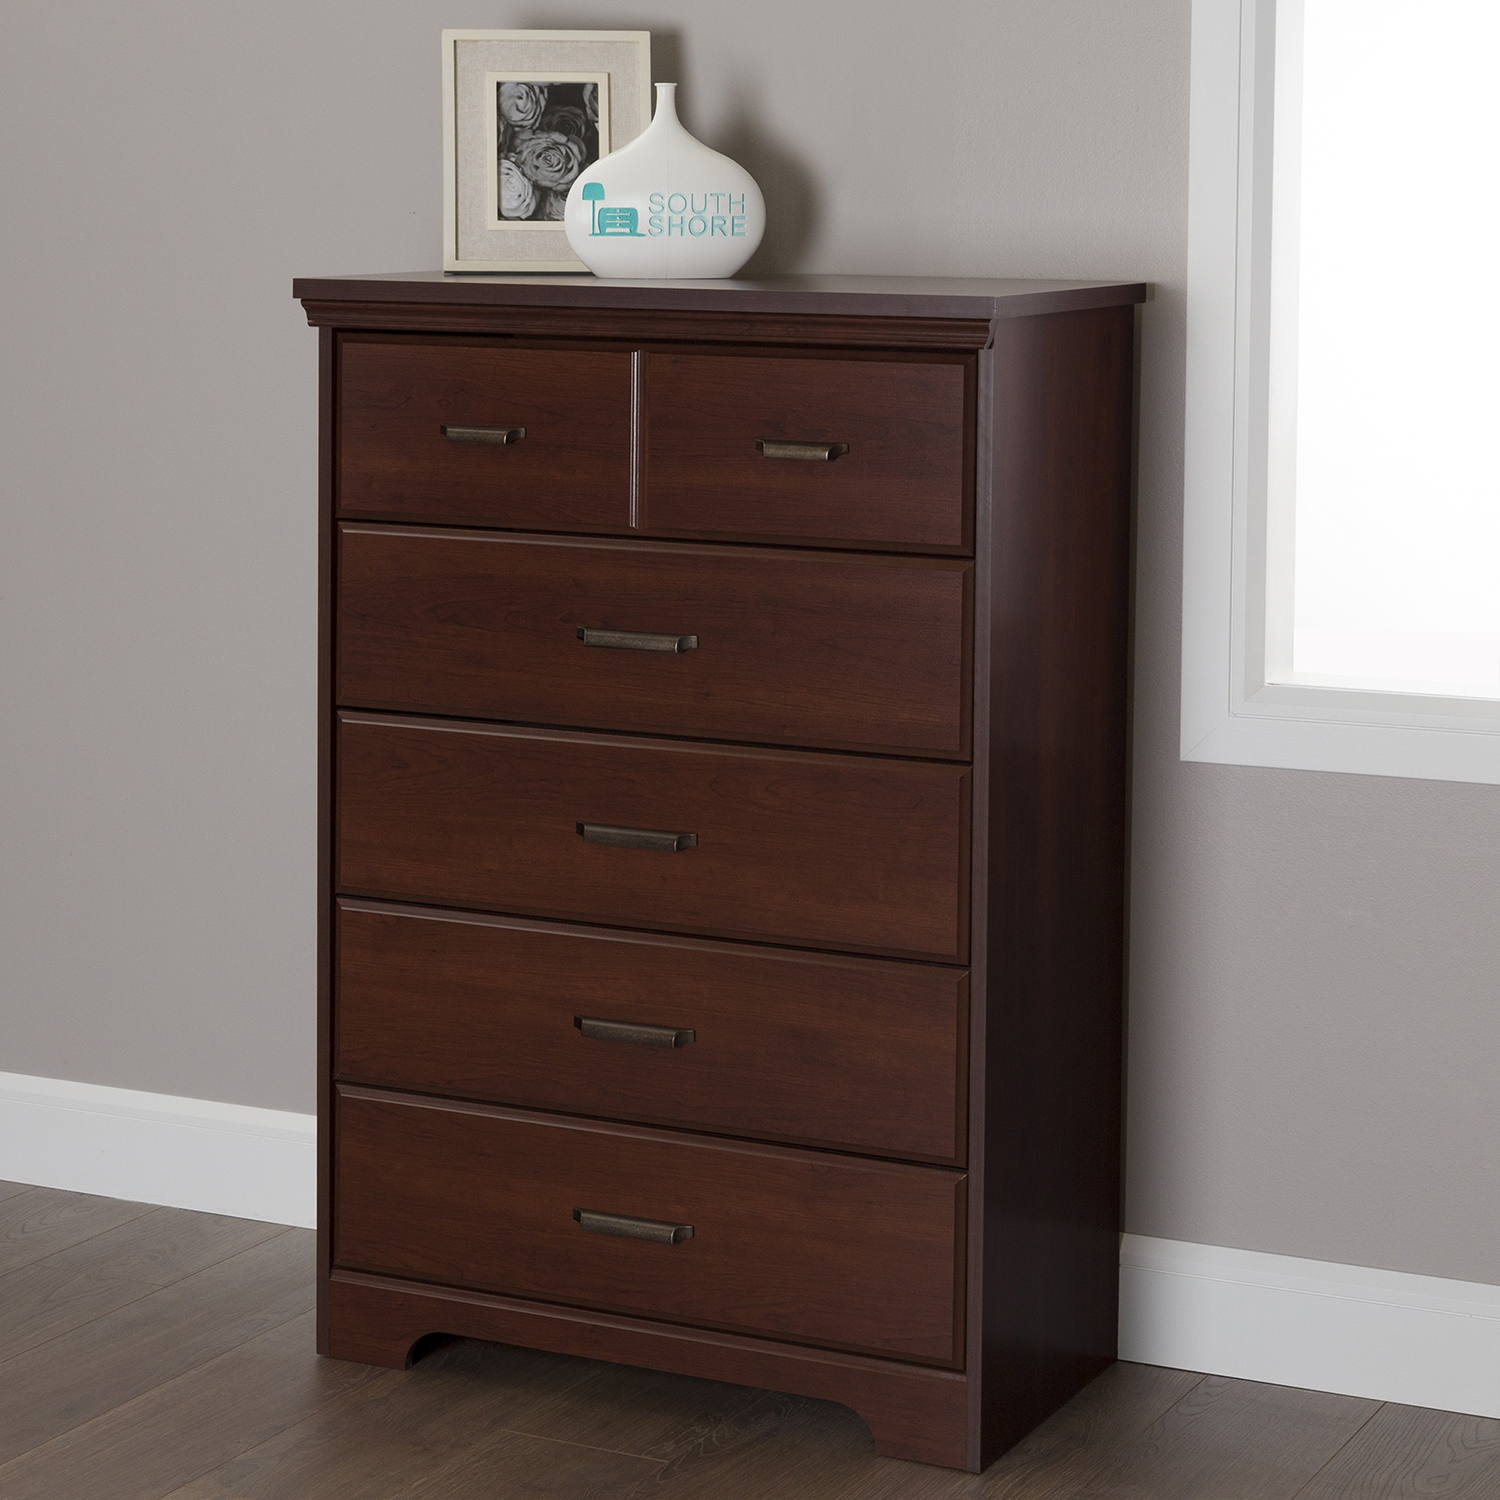 Versa 5 Drawers Chest - Royal Cherry - SS-10124